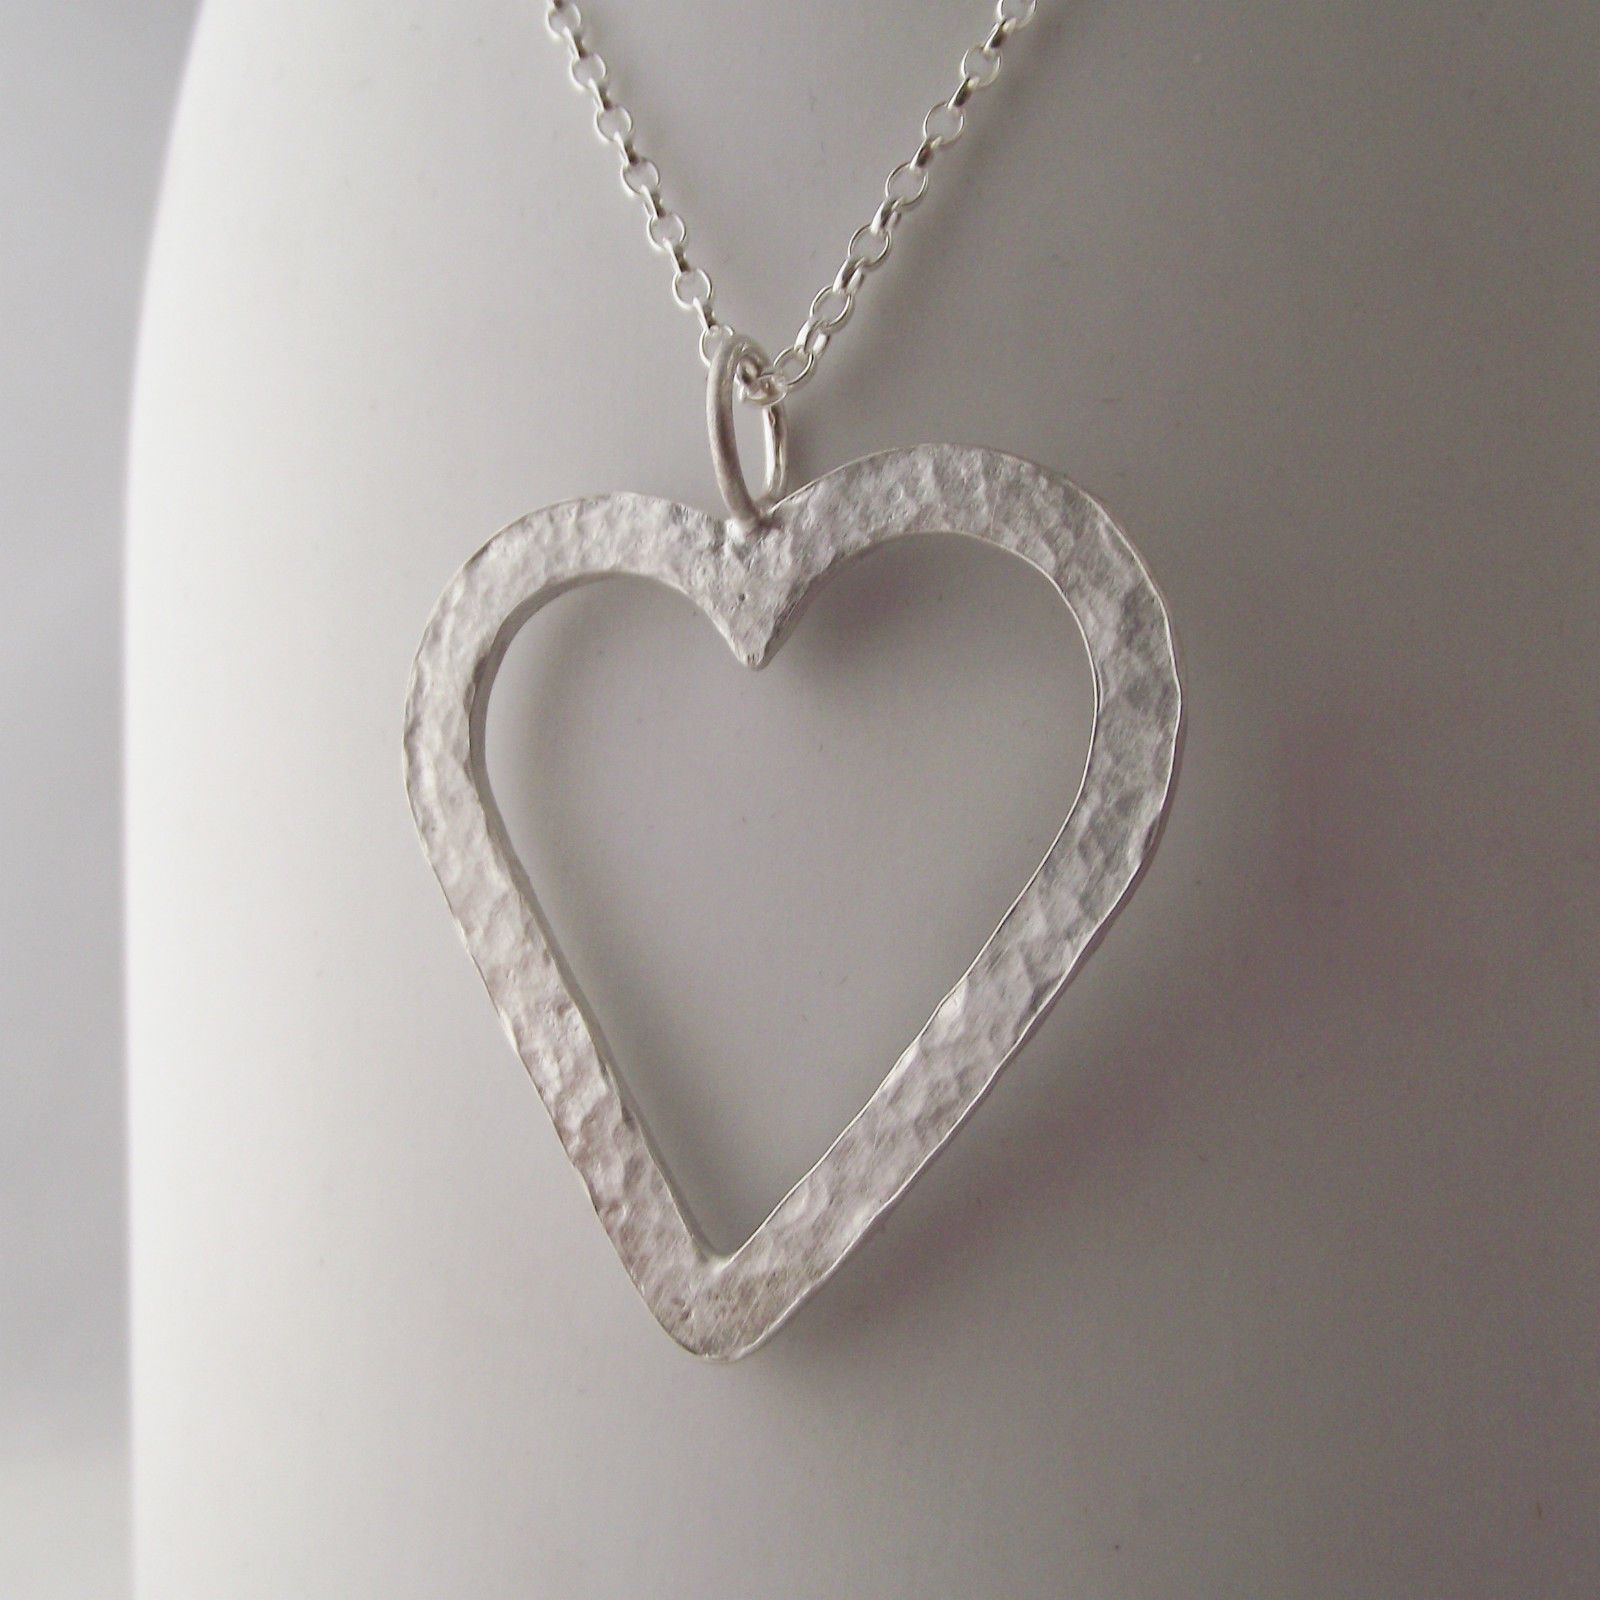 Stunning necklace handmade sterling silver hammer finish large heart stunning necklace handmade sterling silver hammer finish large heart pendant mozeypictures Choice Image